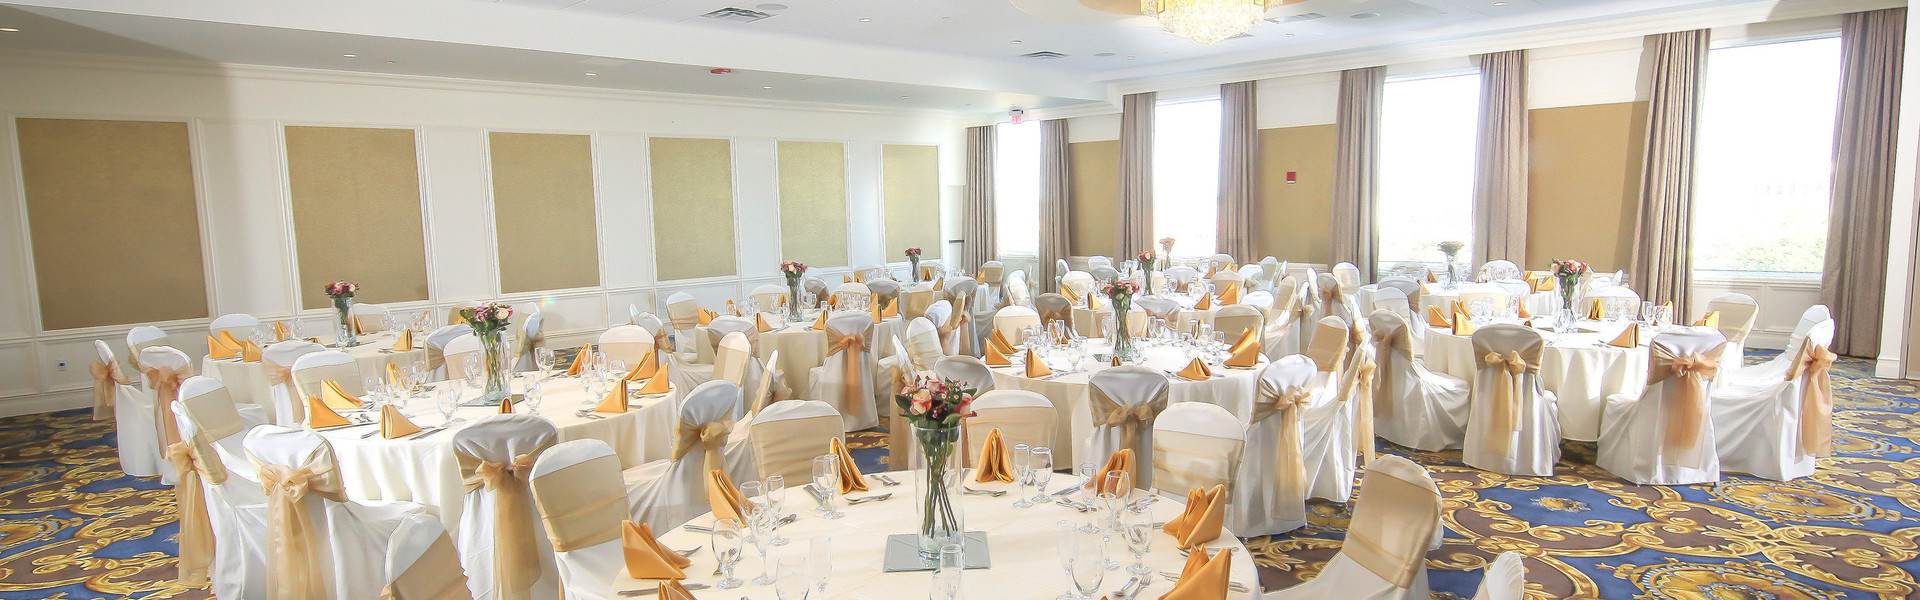 Orlando Hotel Wedding Packages - Orlando Wedding Reception